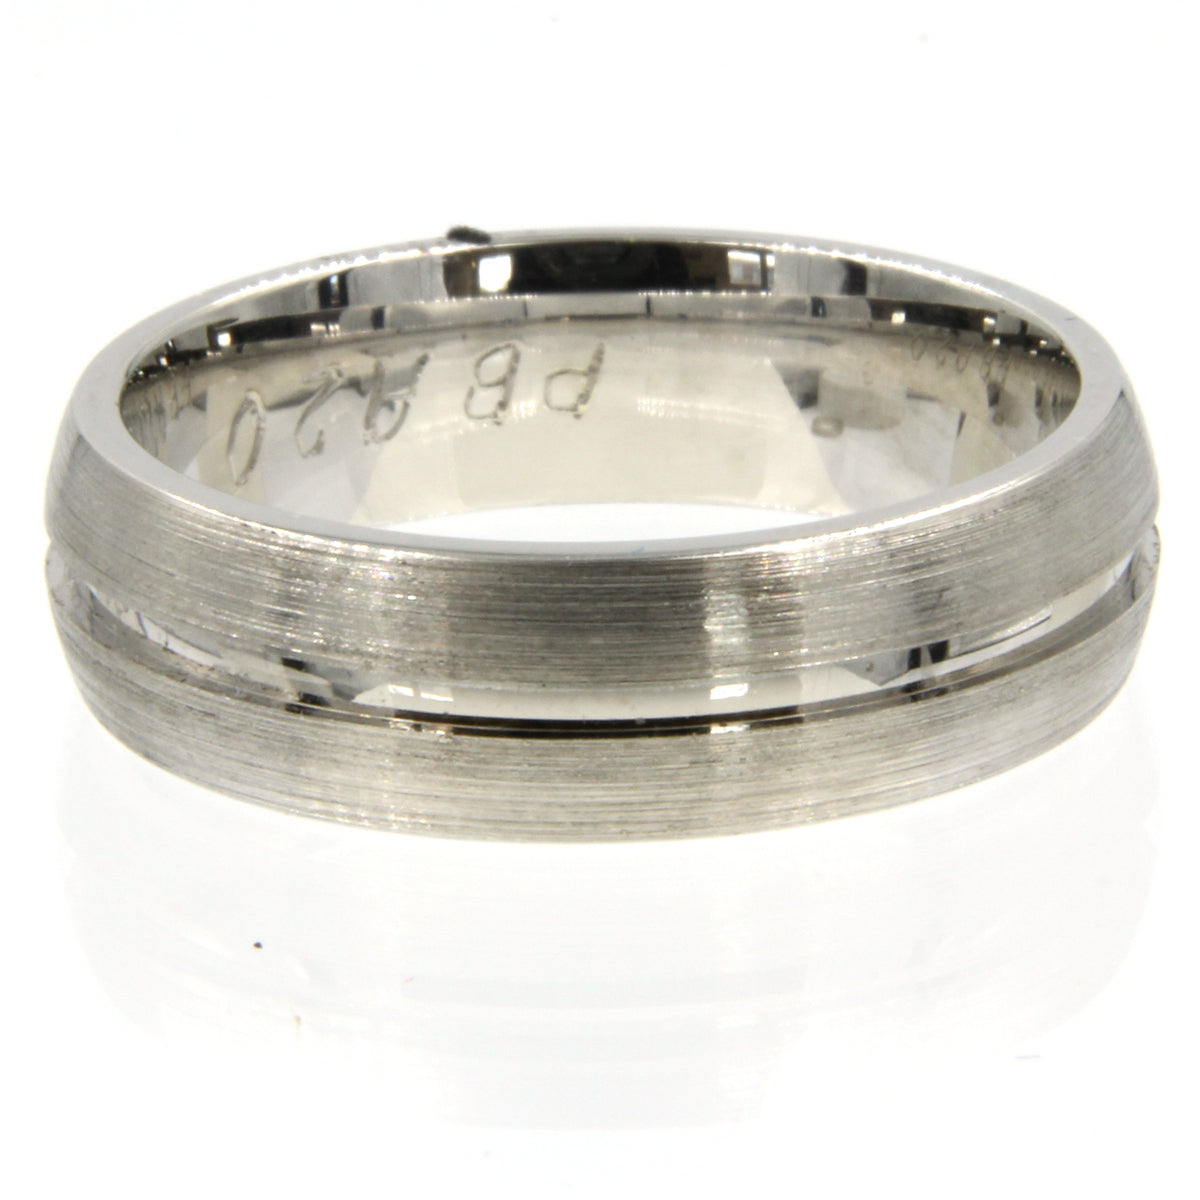 Gents Wedding ring (PALLADIUM OR PLATINUM) - Model RS-PB20